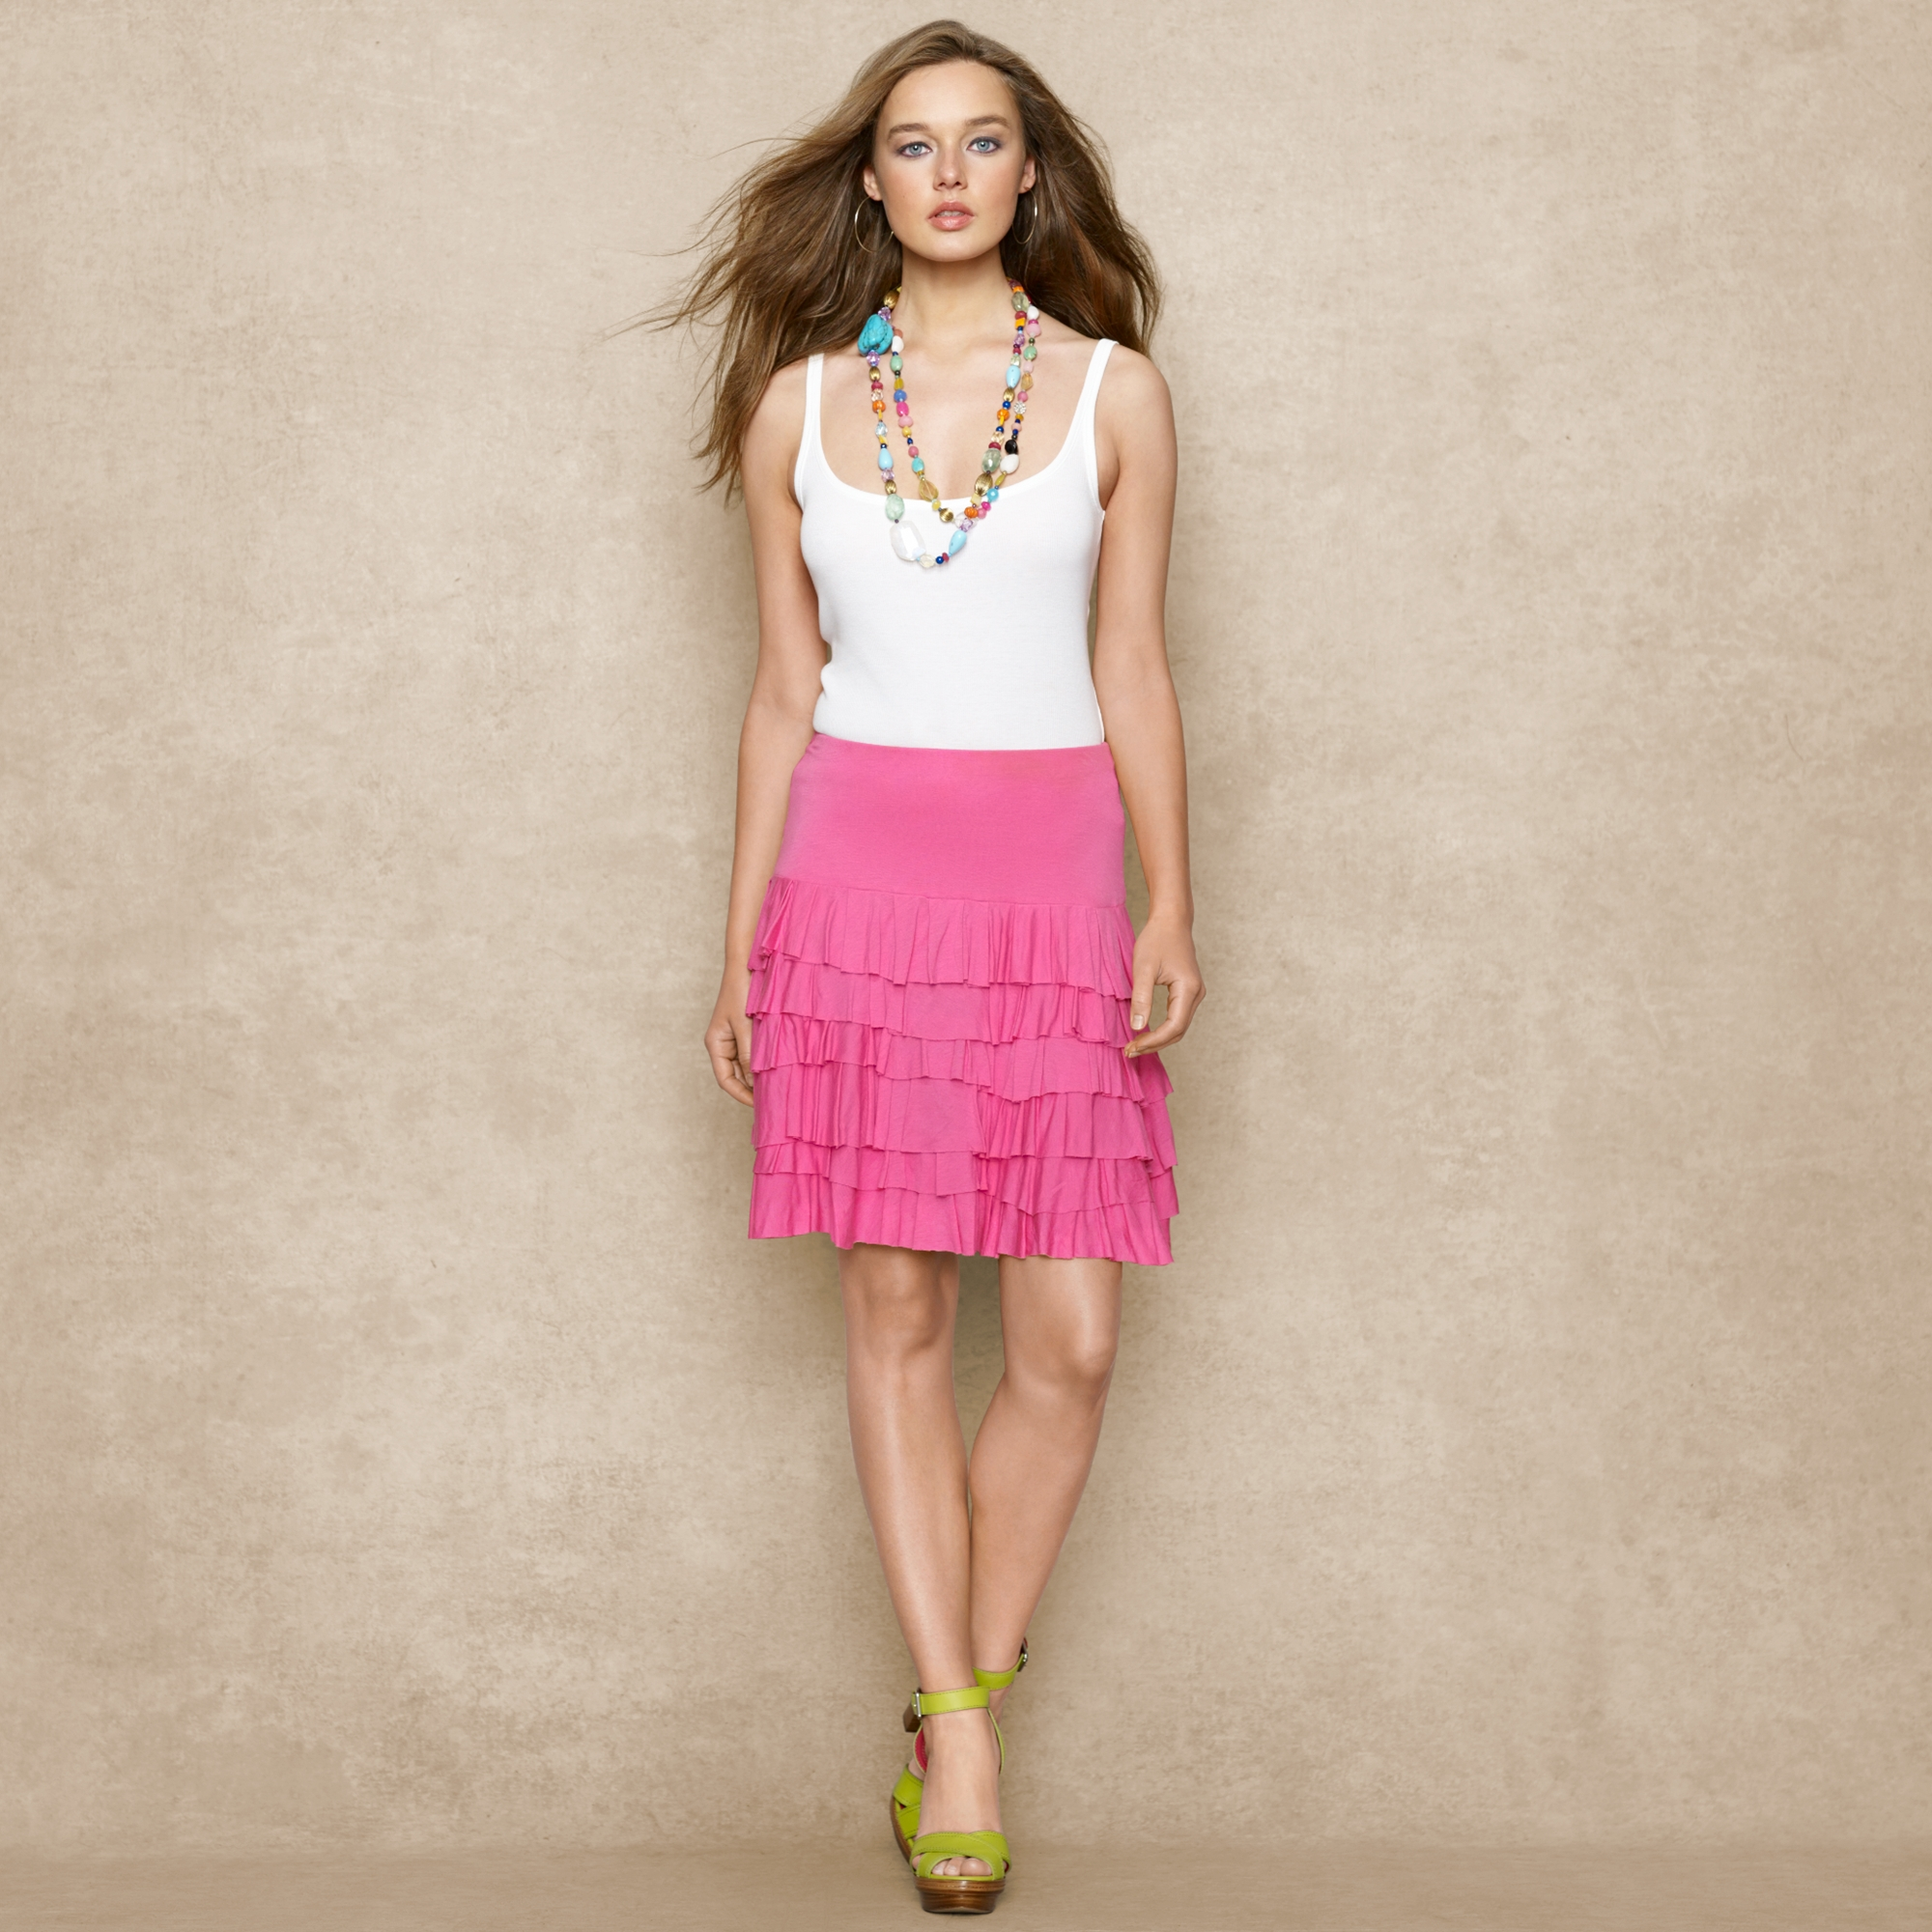 image of ralph lauren top and skirt